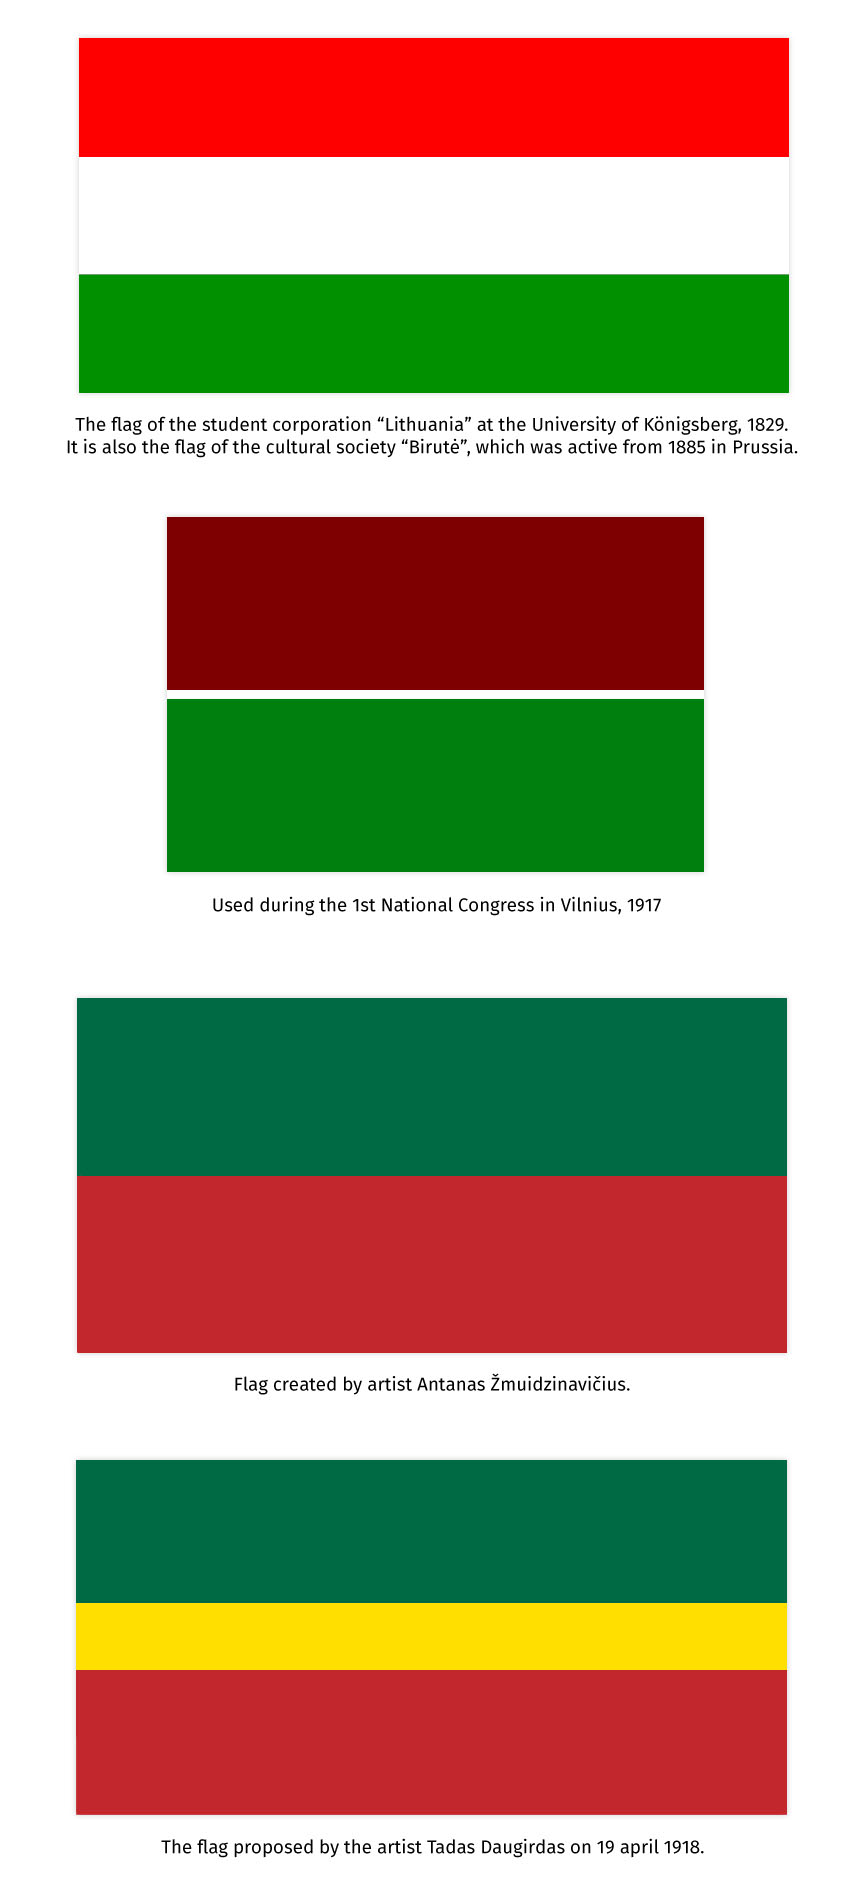 en69-flag-of-lithuania-on-the-way-to-the-formation-of-lithuanian-statehood_12